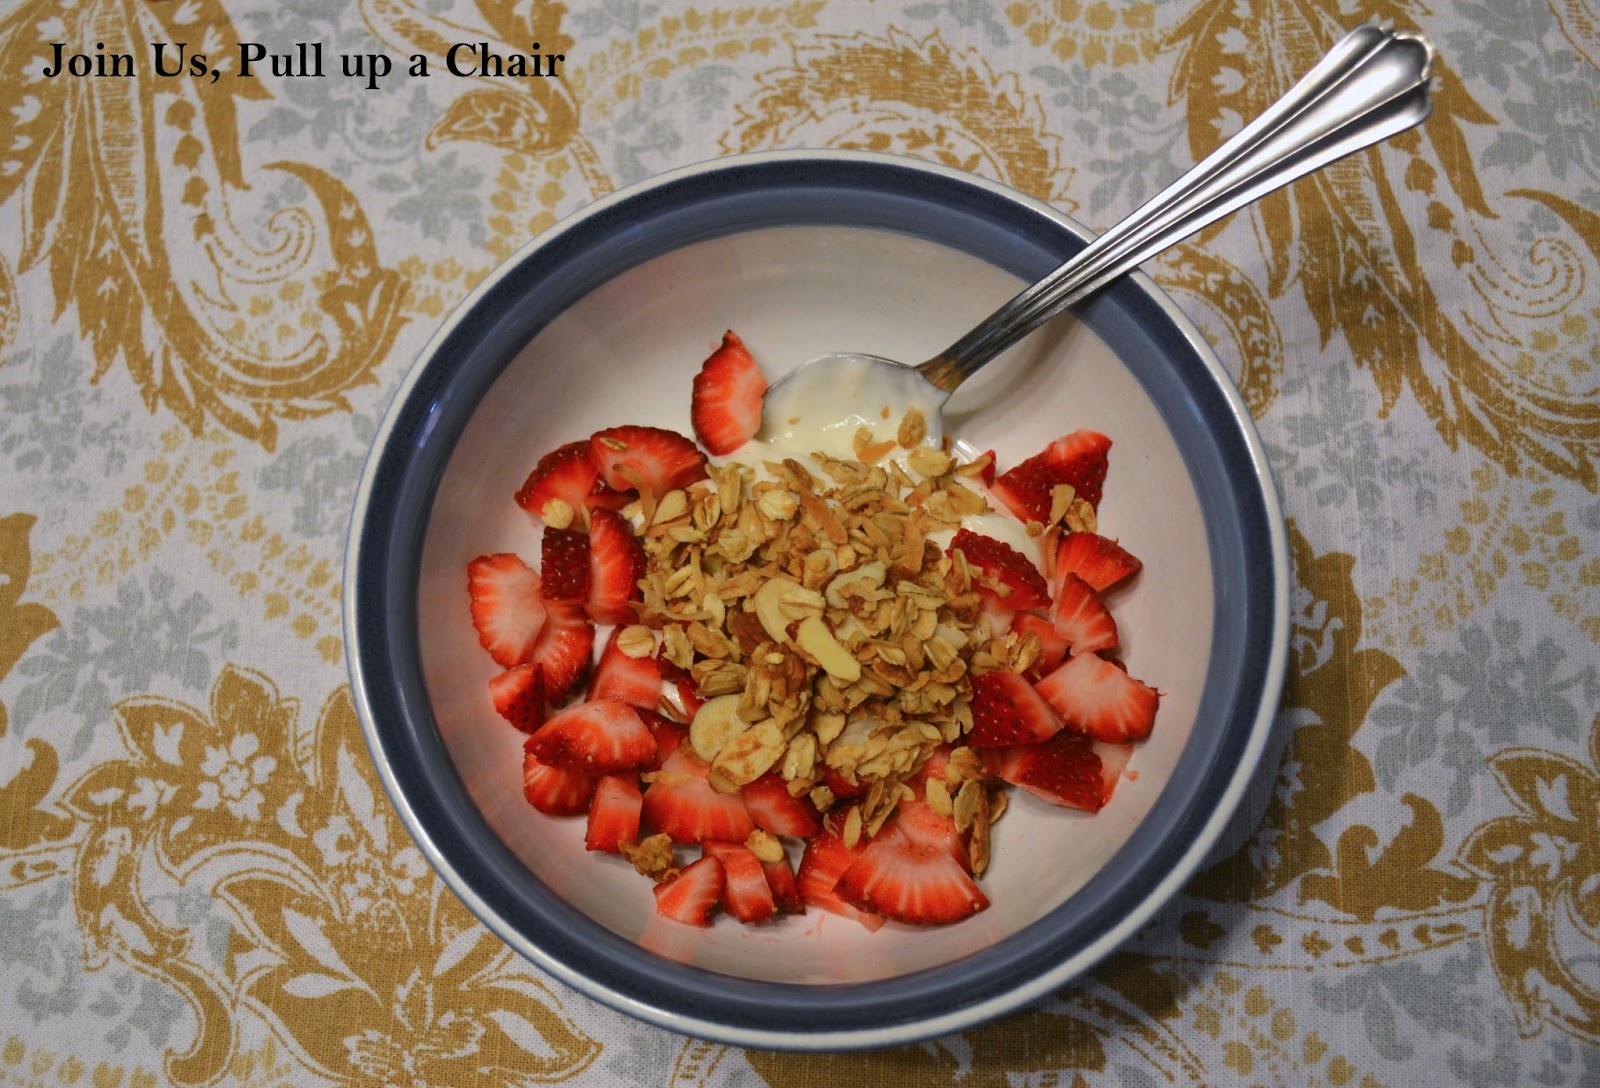 Coconut Almond Granola | Join Us, Pull up a Chair